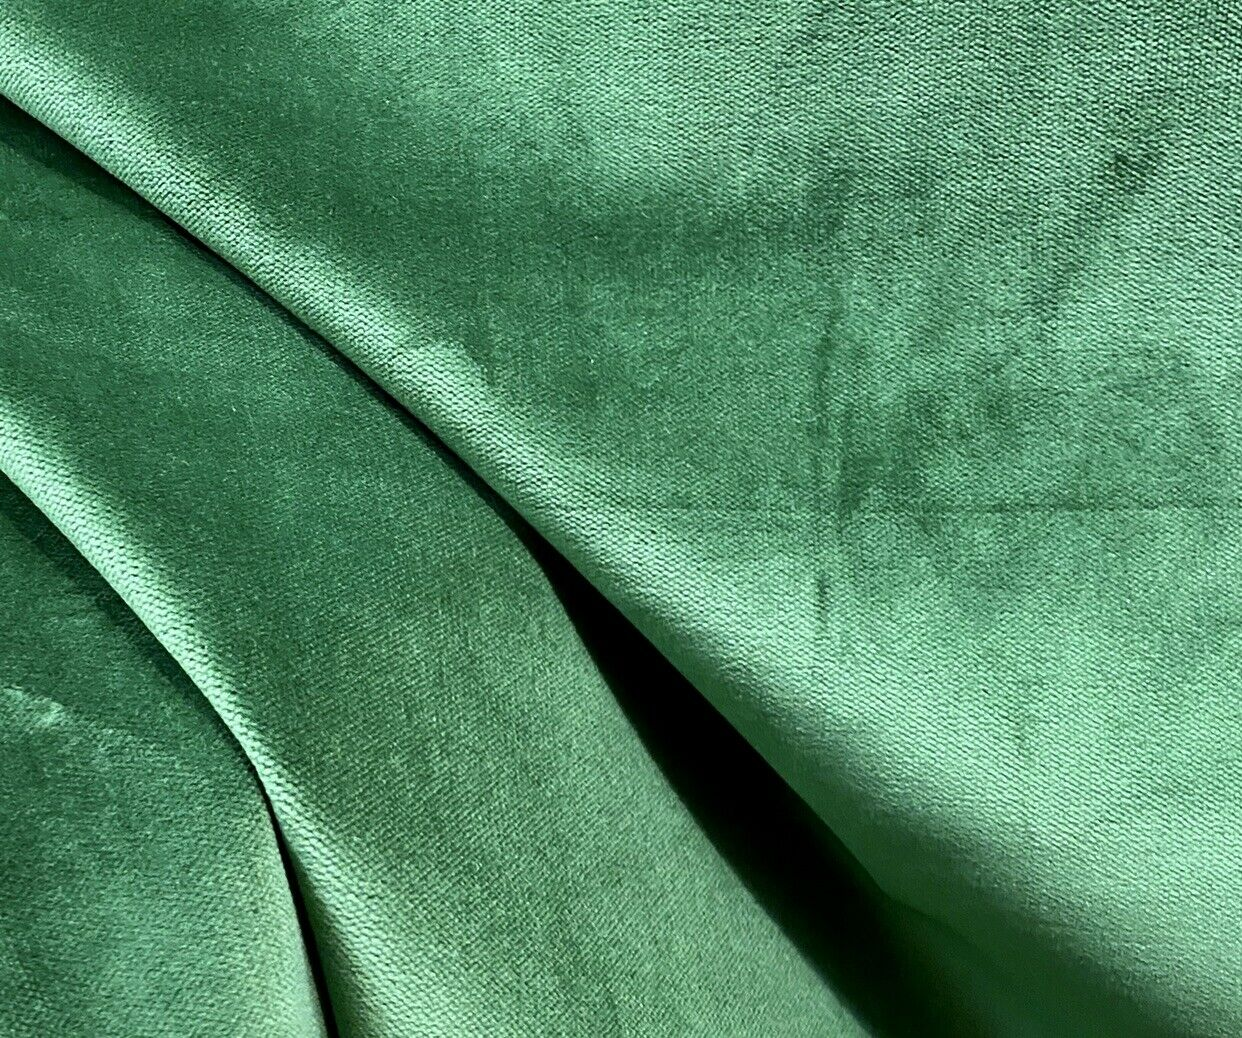 NEW! Designer Soft Heavy Weight Cotton Velvet Fabric -Green - Upholstery BTY